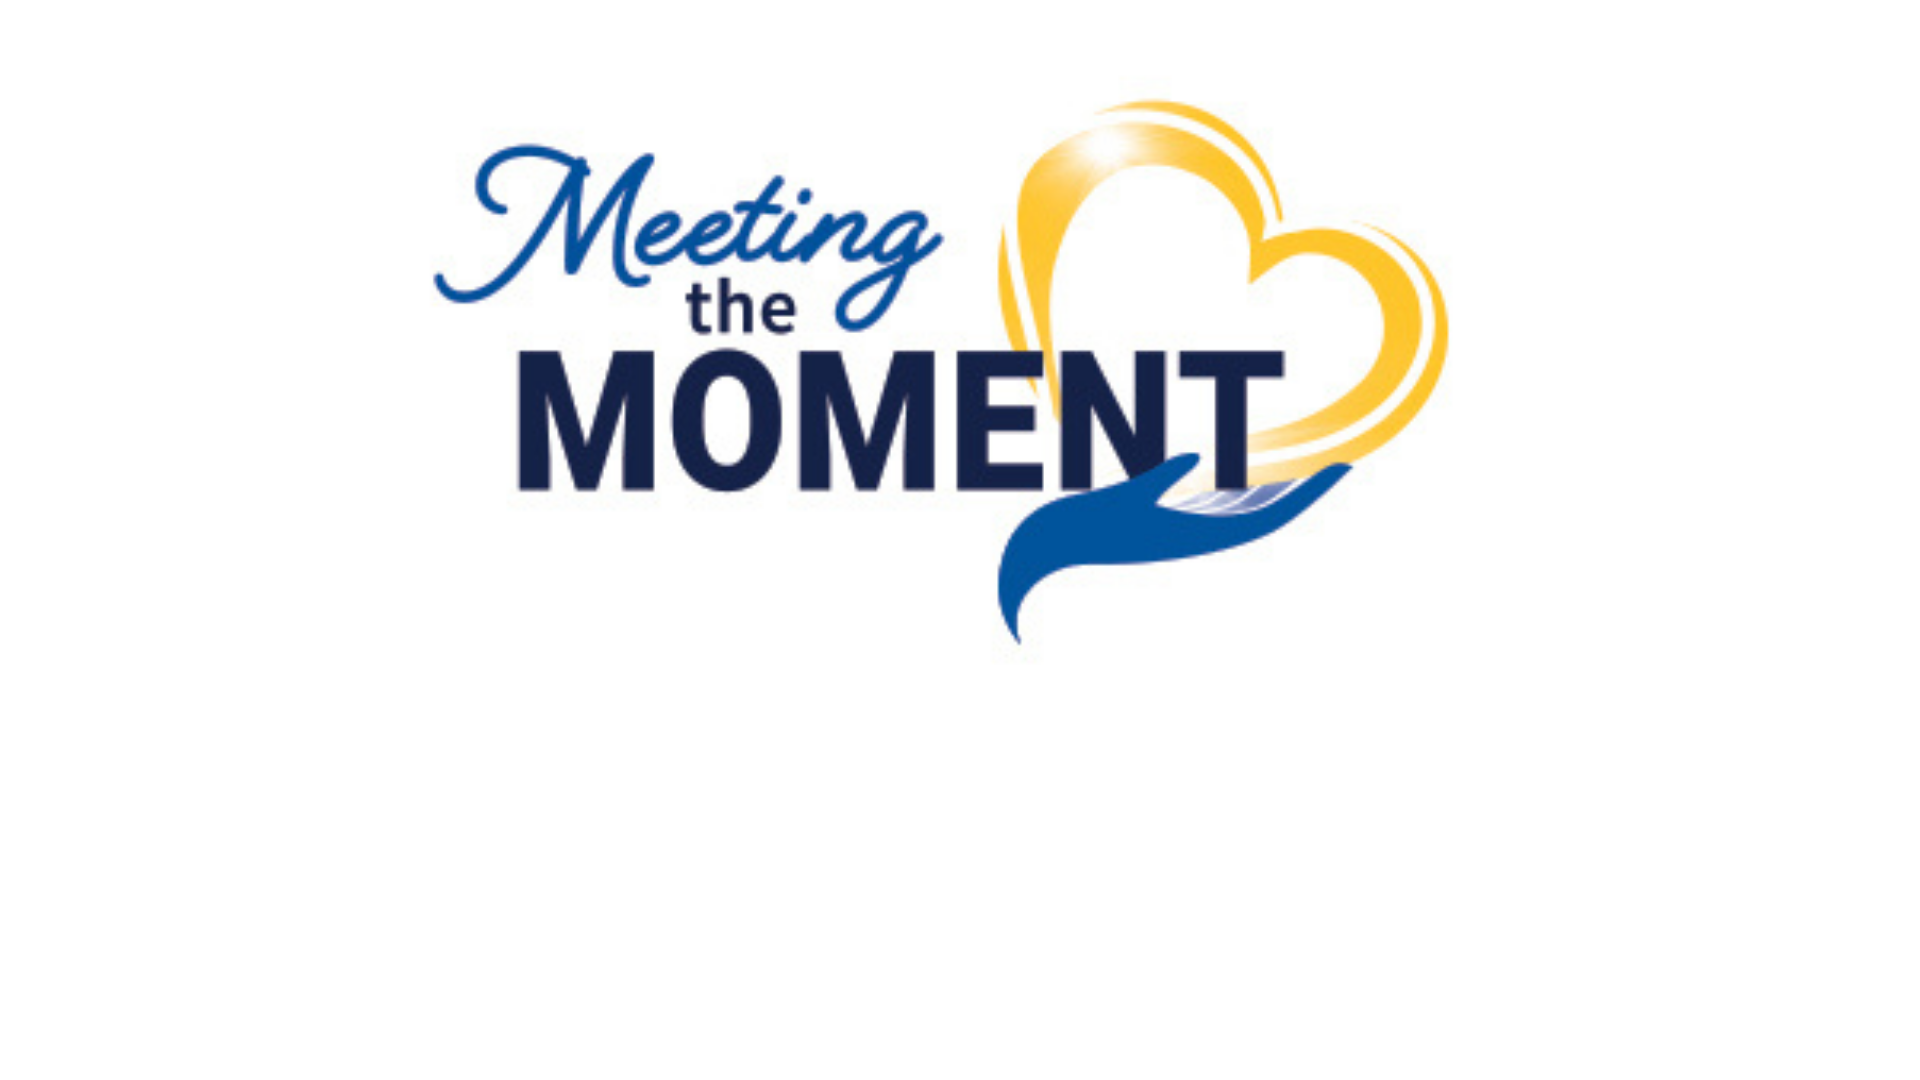 Meeting the moment logo yellow heart held in blue hand